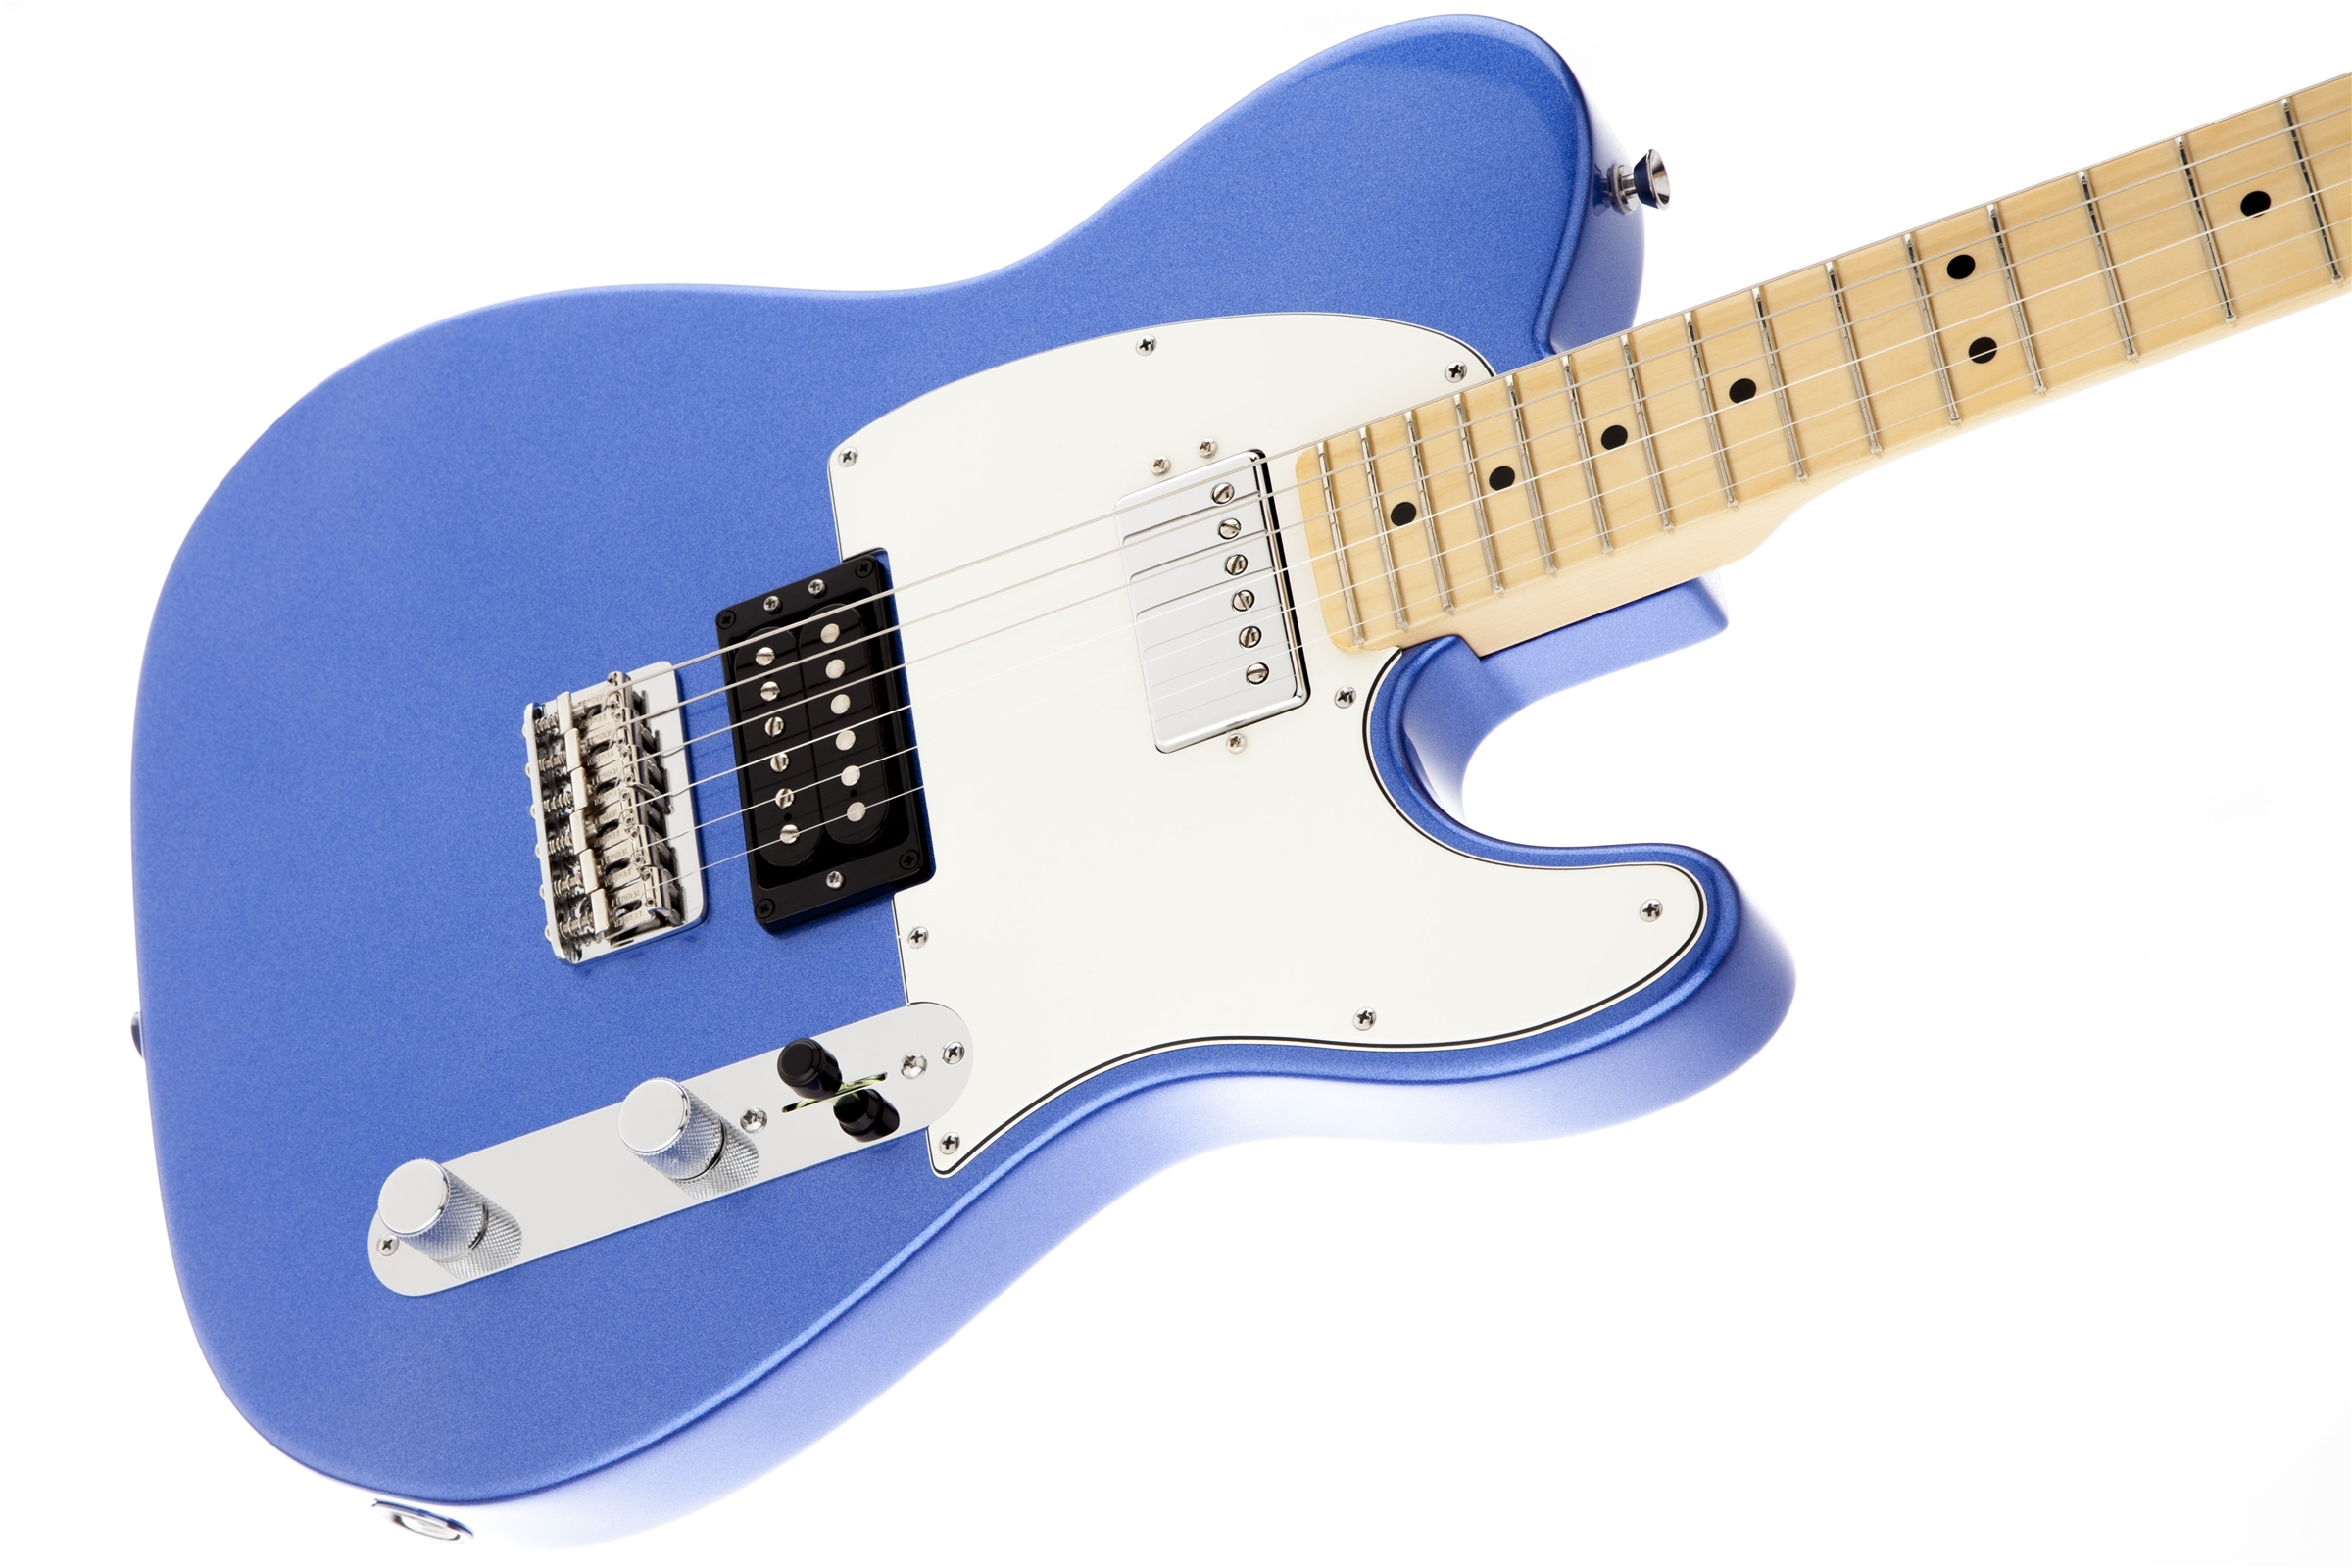 Fender Telecaster Hh >> Fender American Standard Telecaster Hh Ocean Blue Metallic Mn Electric Guitar Jim Laabs Music Store